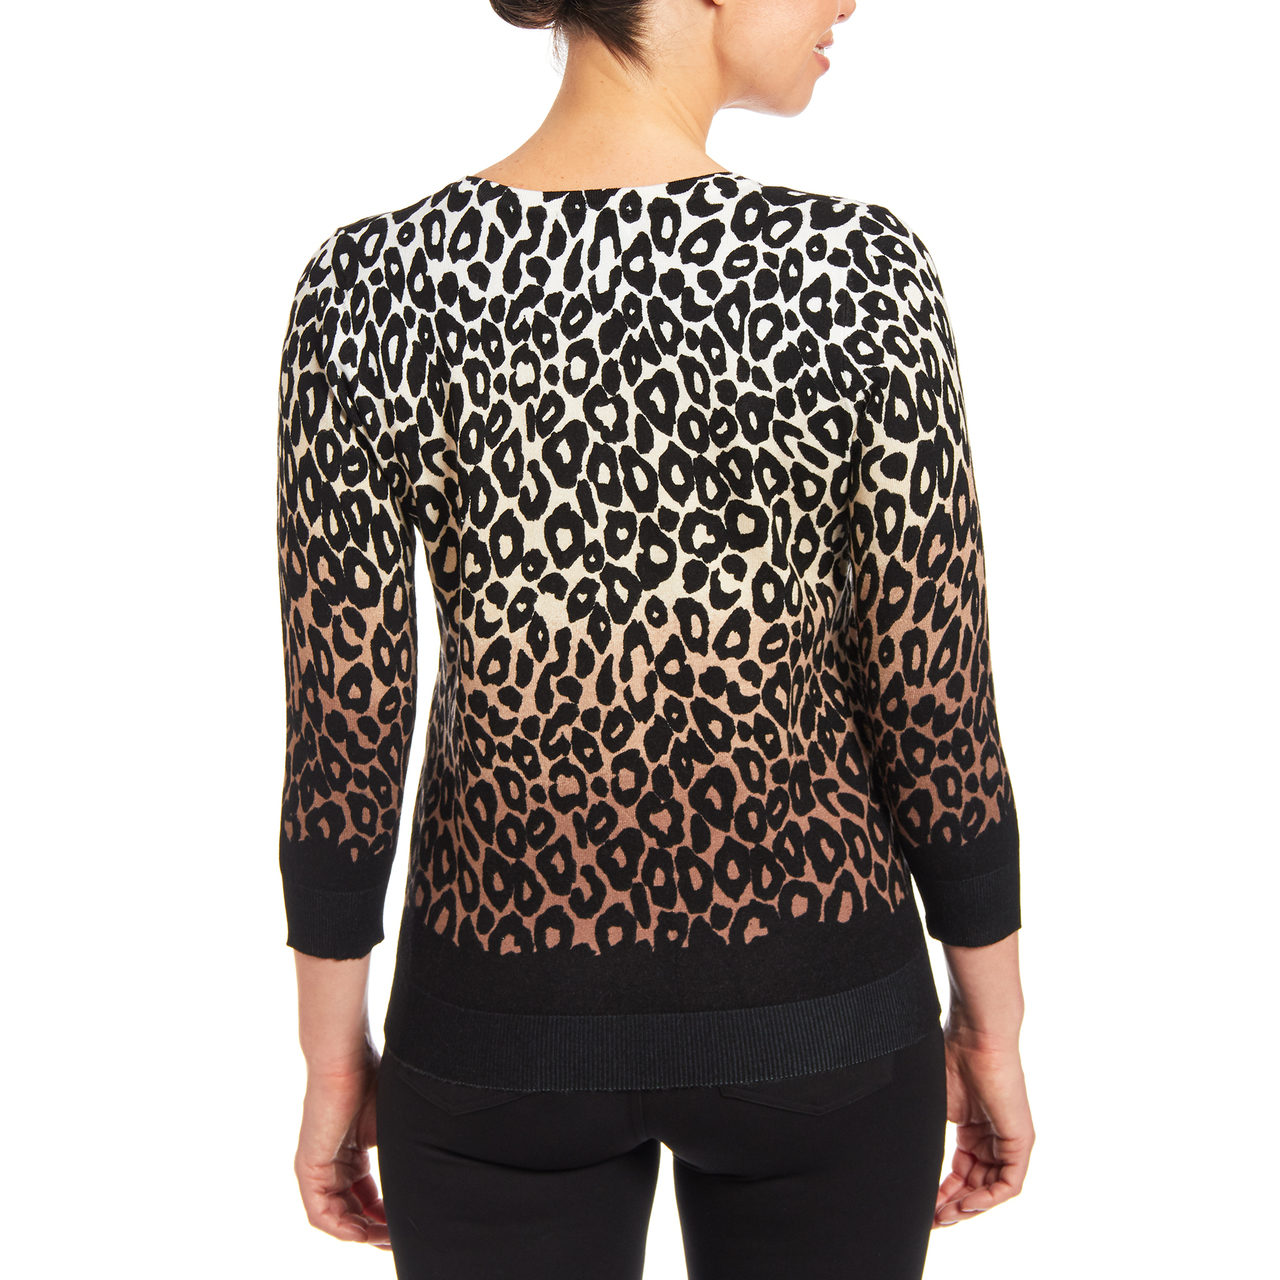 Button-up Cardigan in Animal Print